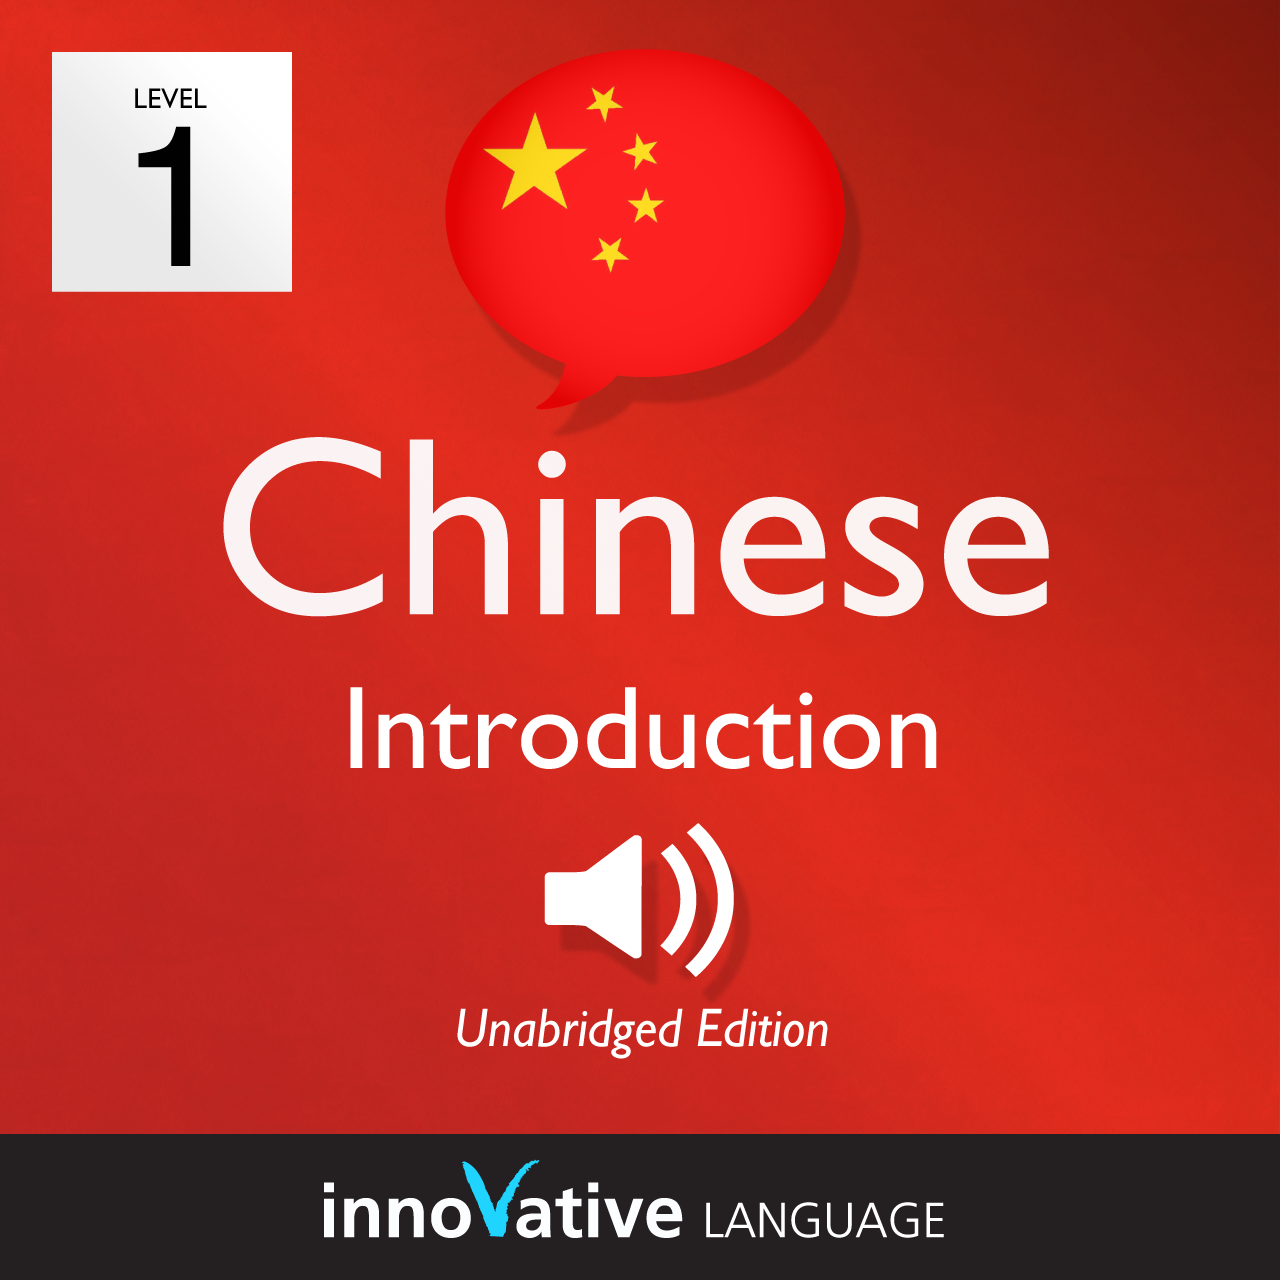 [Audiobook] Learn Chinese - Level 1: Introduction to Chinese, Volume 1